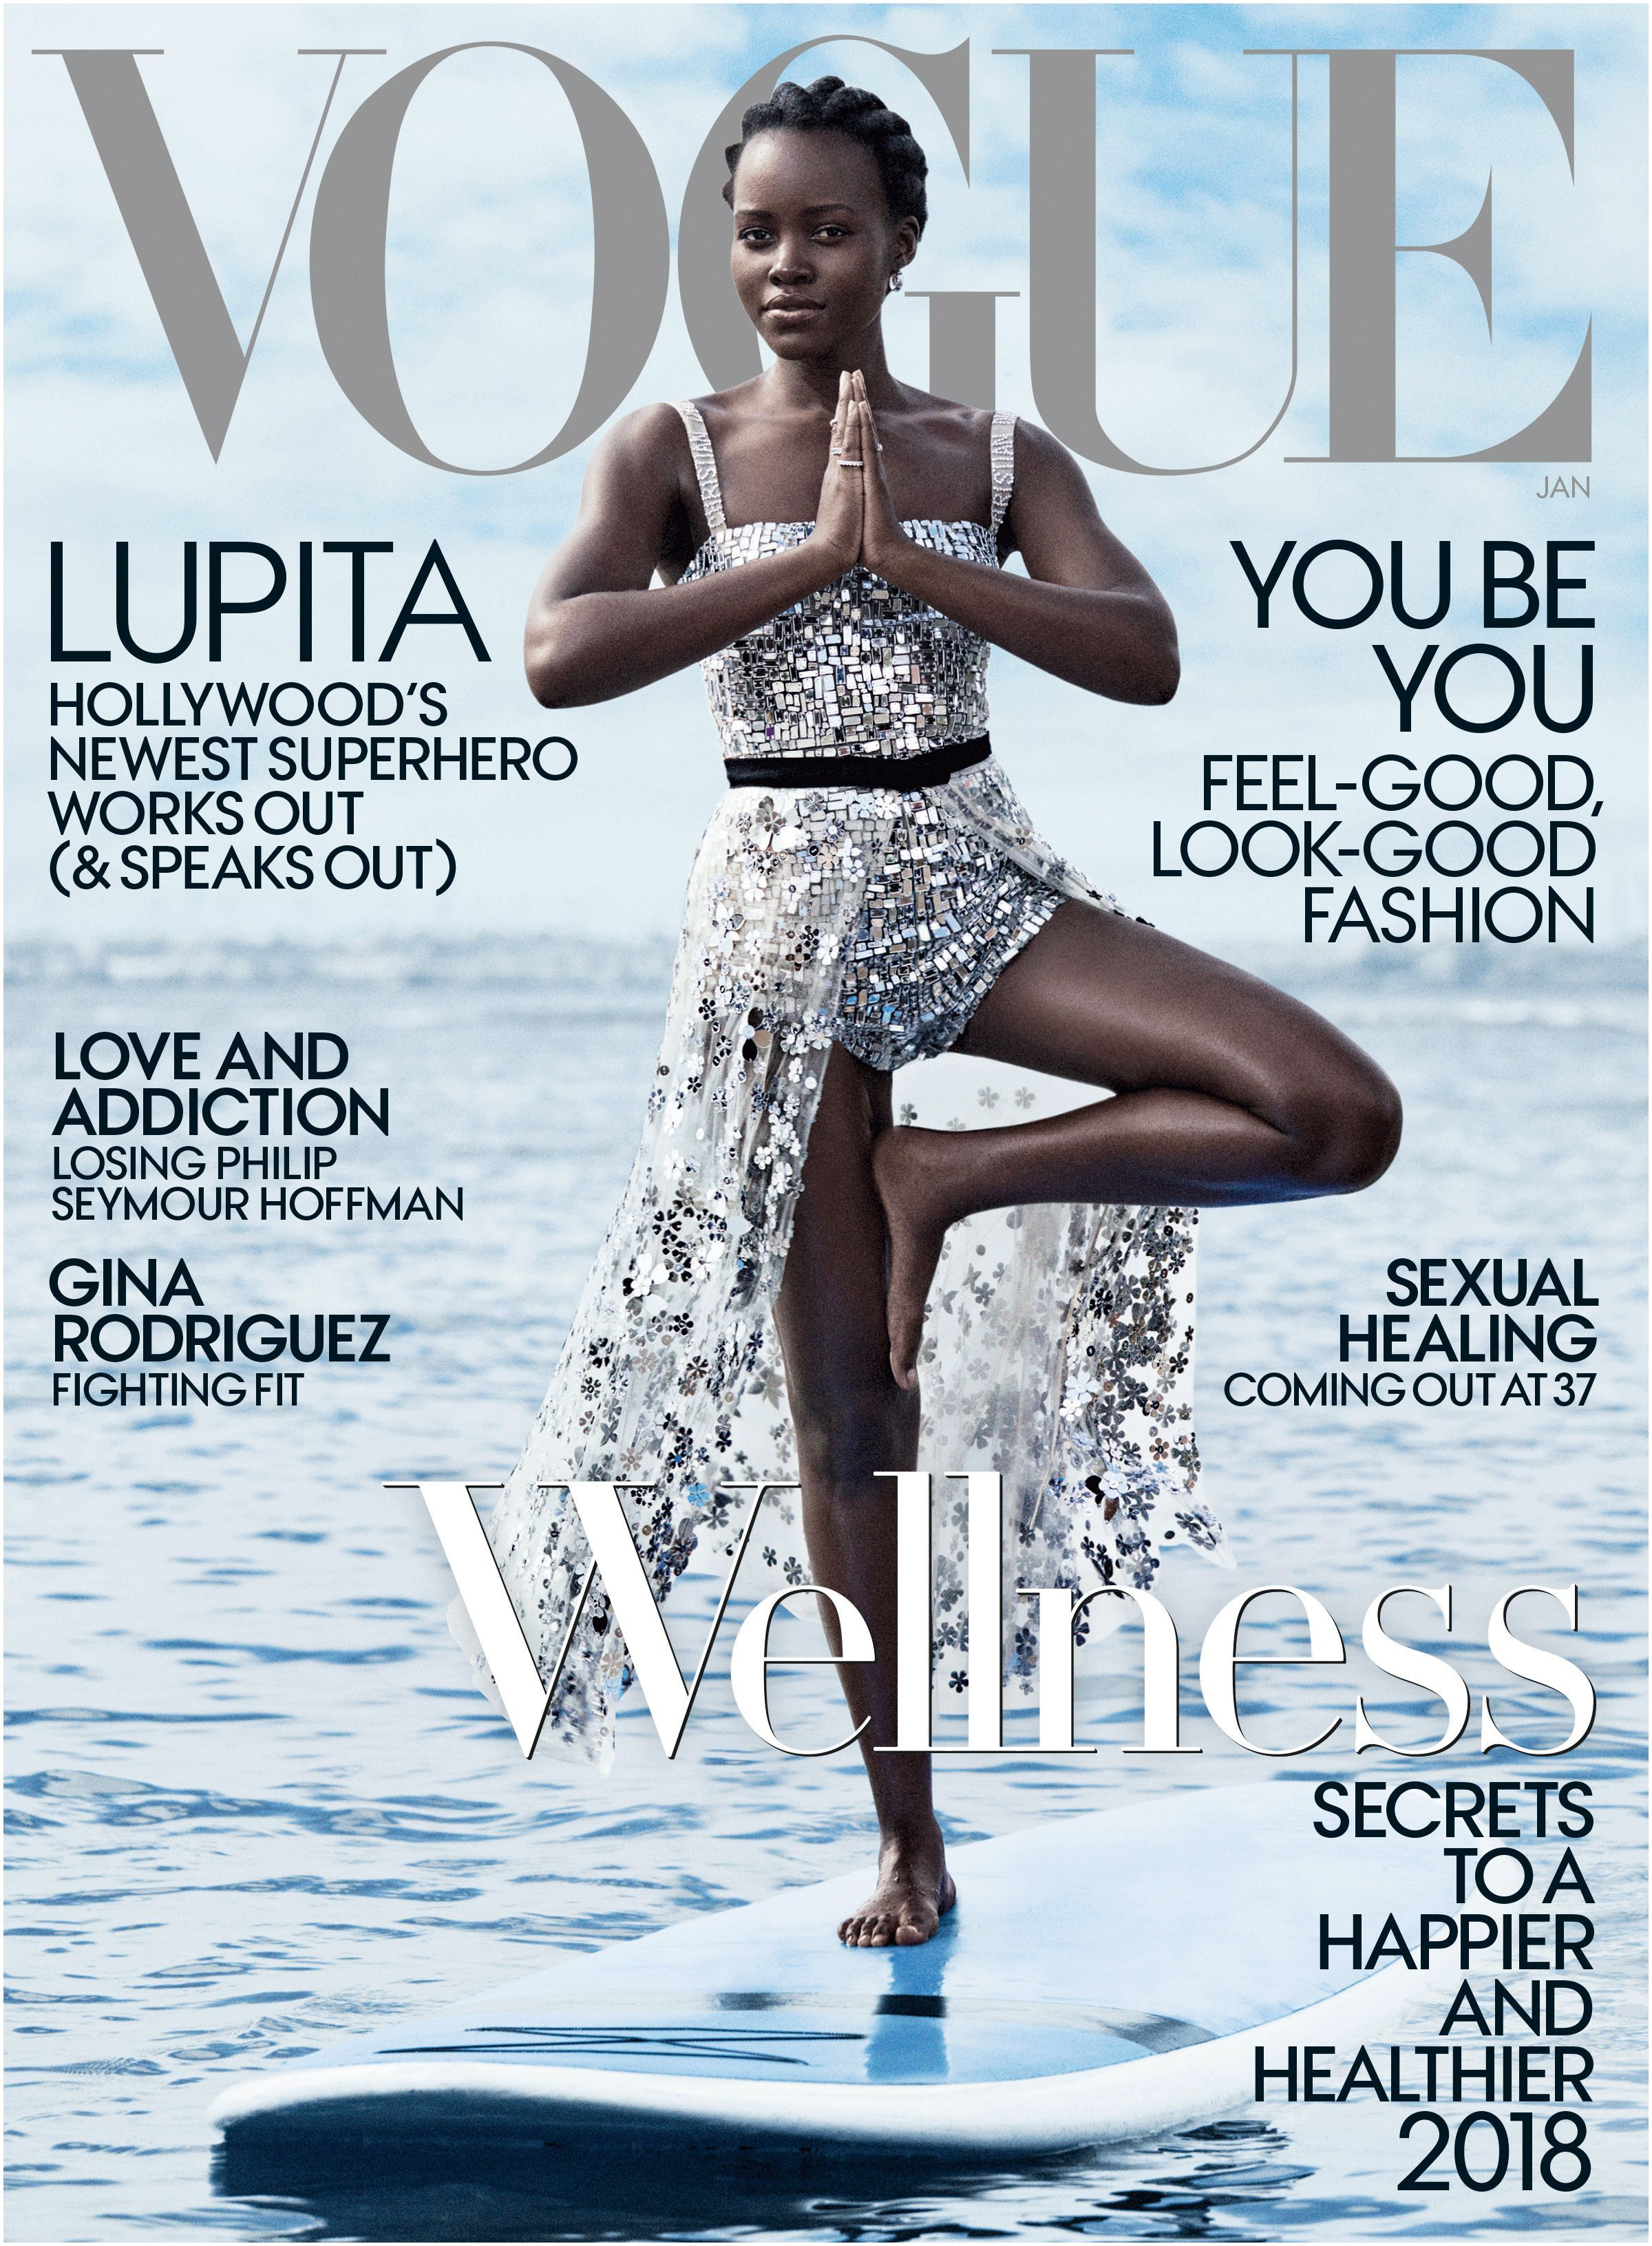 Us Magazine Covers How Lupita Nyong O Transformed Herself Into Hollywood S Newest